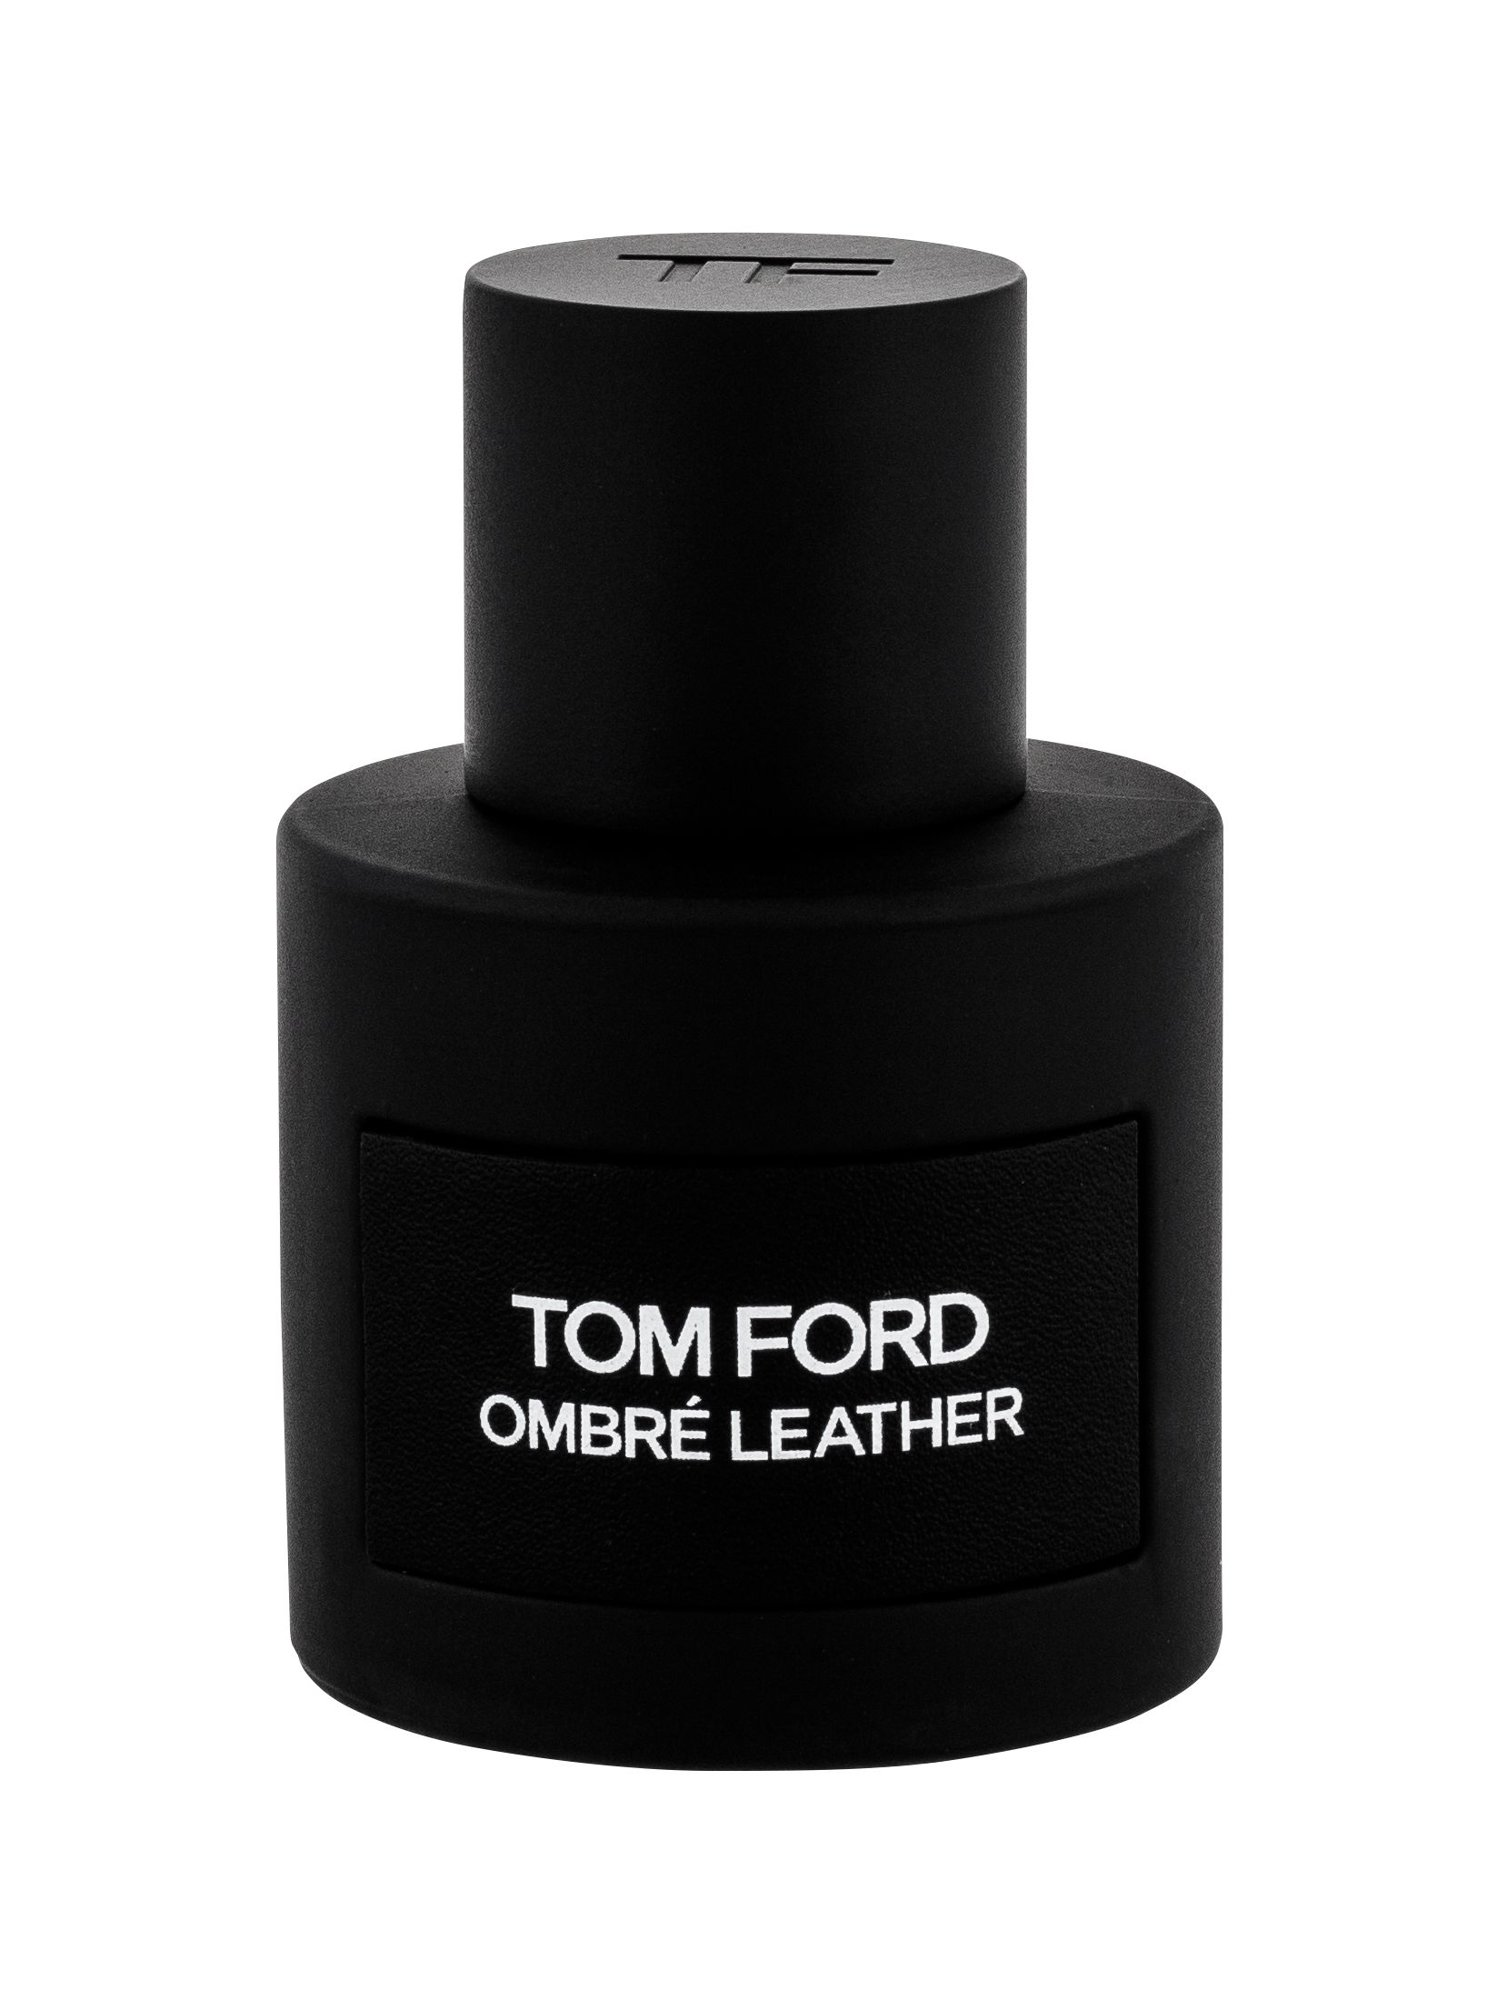 TOM FORD Ombré Leather Eau de Parfum 50ml